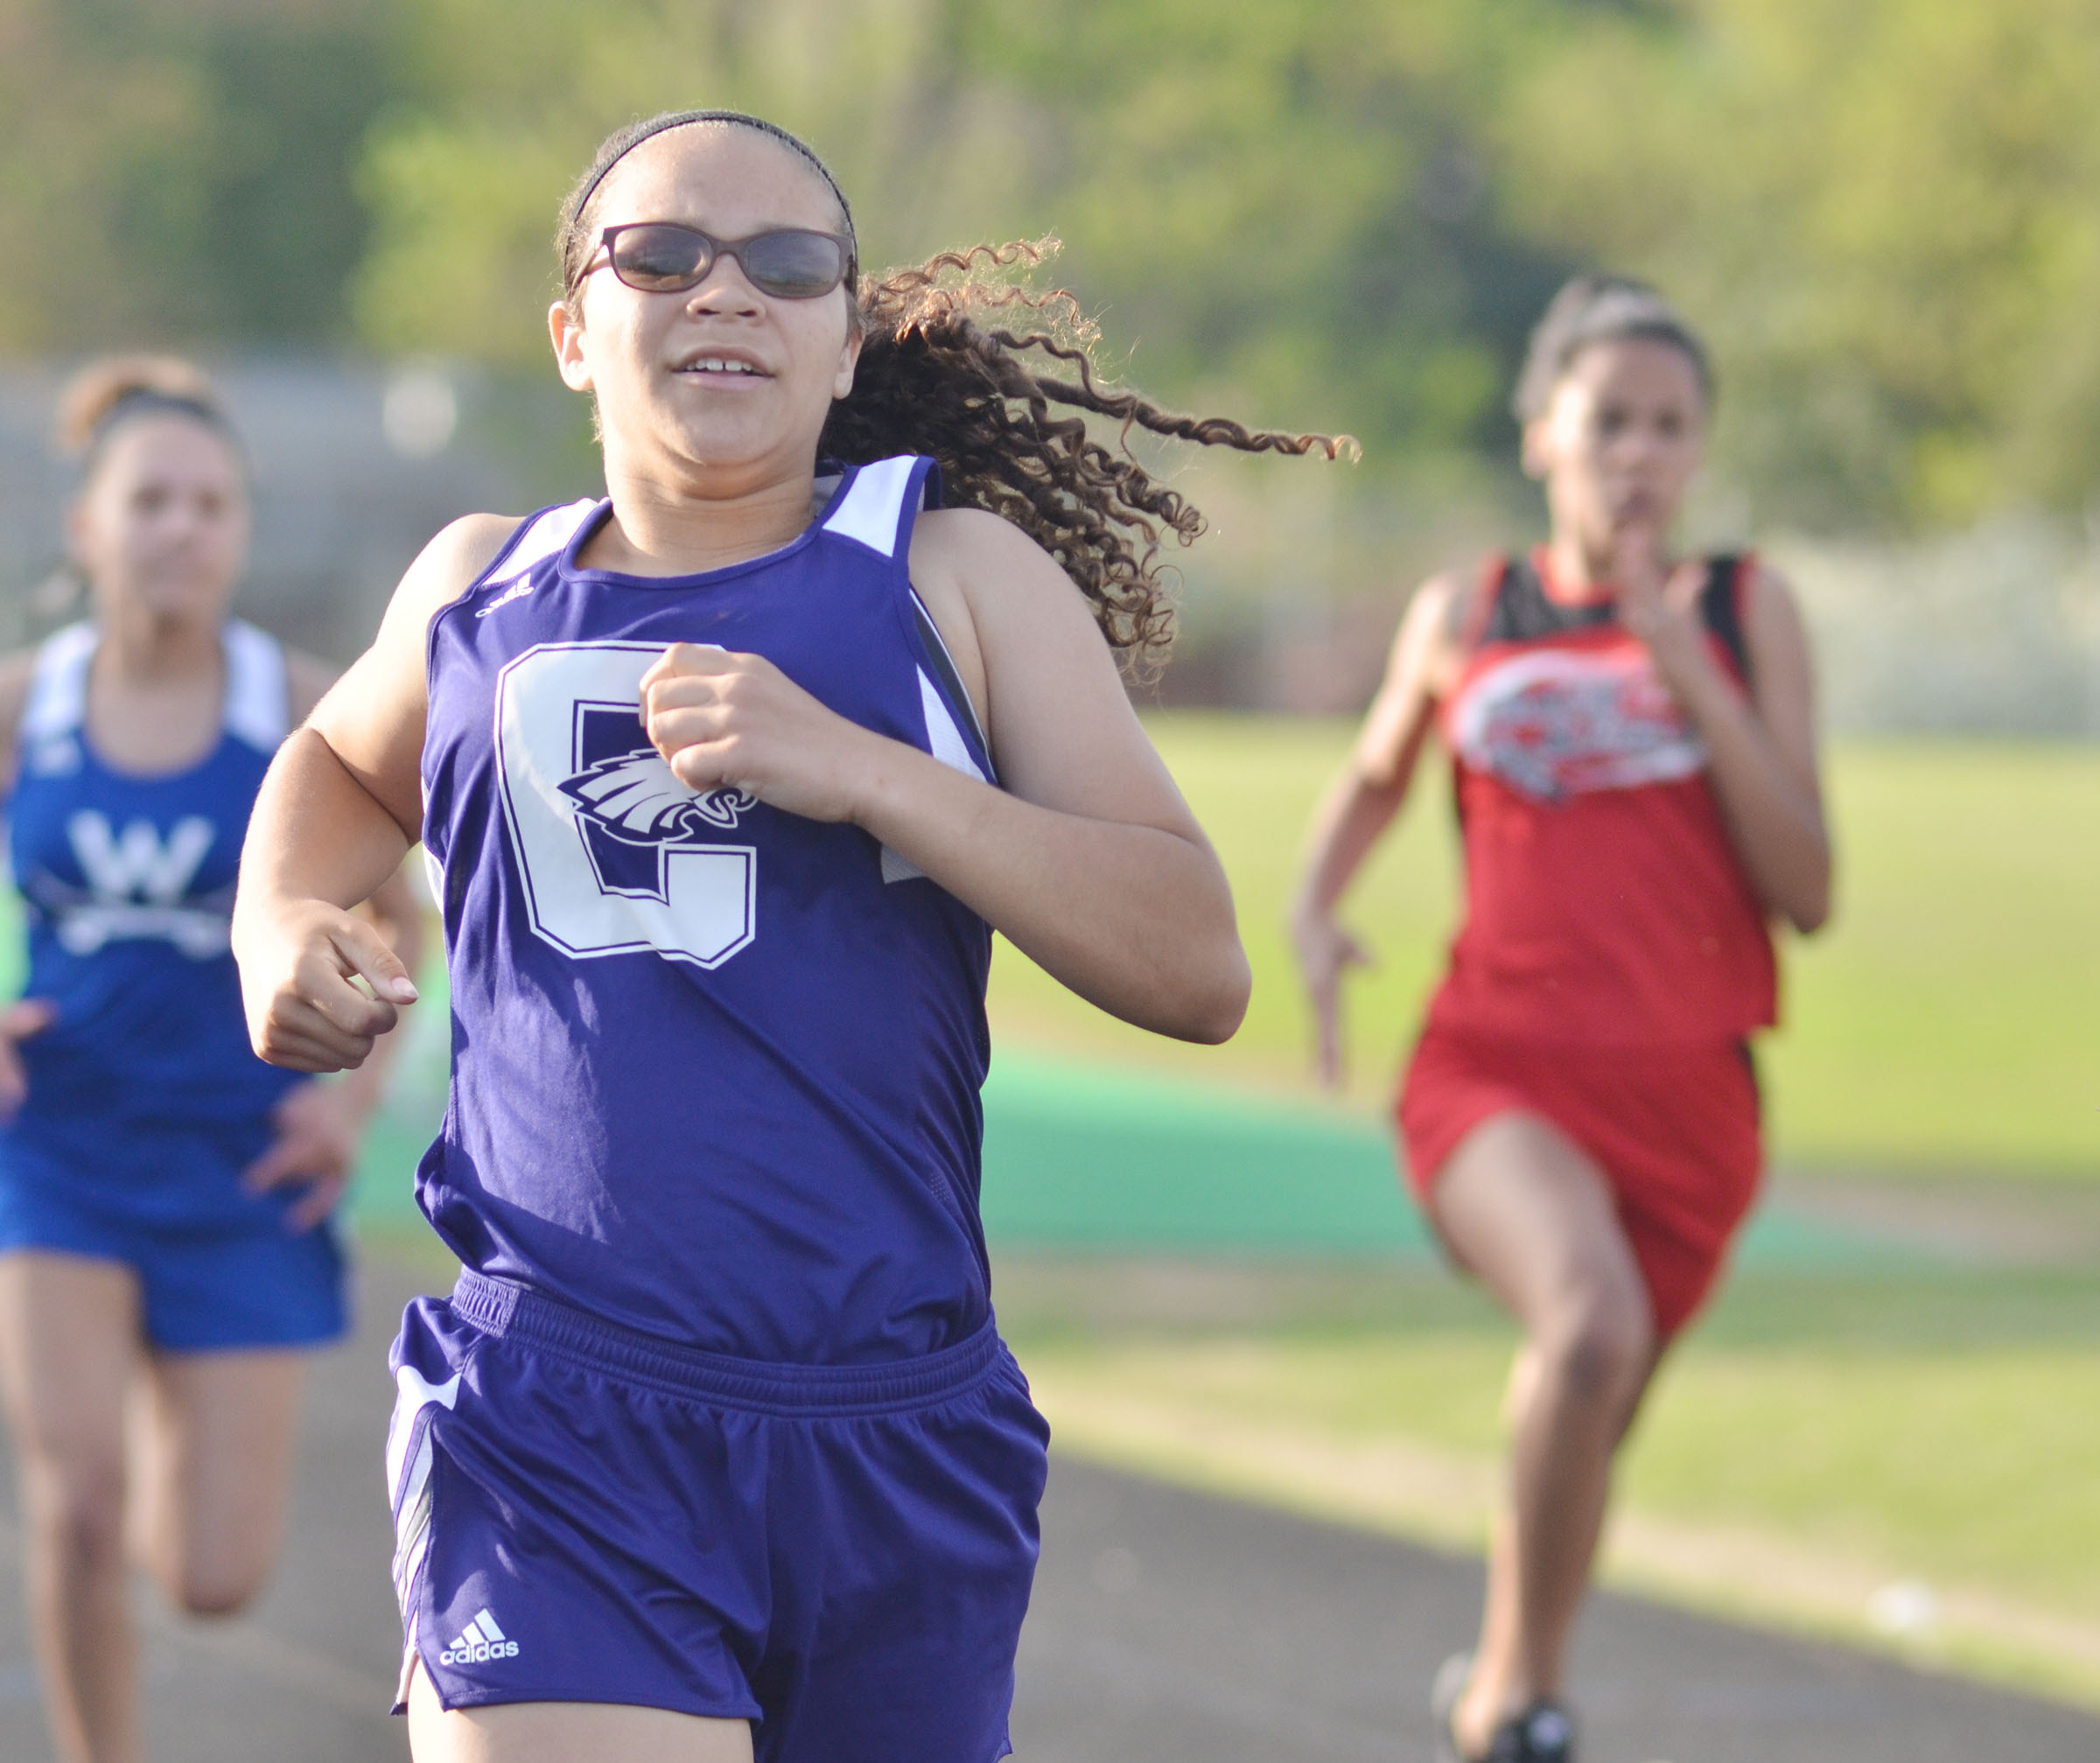 Campbellsville High School track star Taliyah Hazelwood has been chosen to represent her school and country while competing in Australia. She recently completed a very successful season on the CHS track team, culminating with a personal record at the KHSAA state meet.